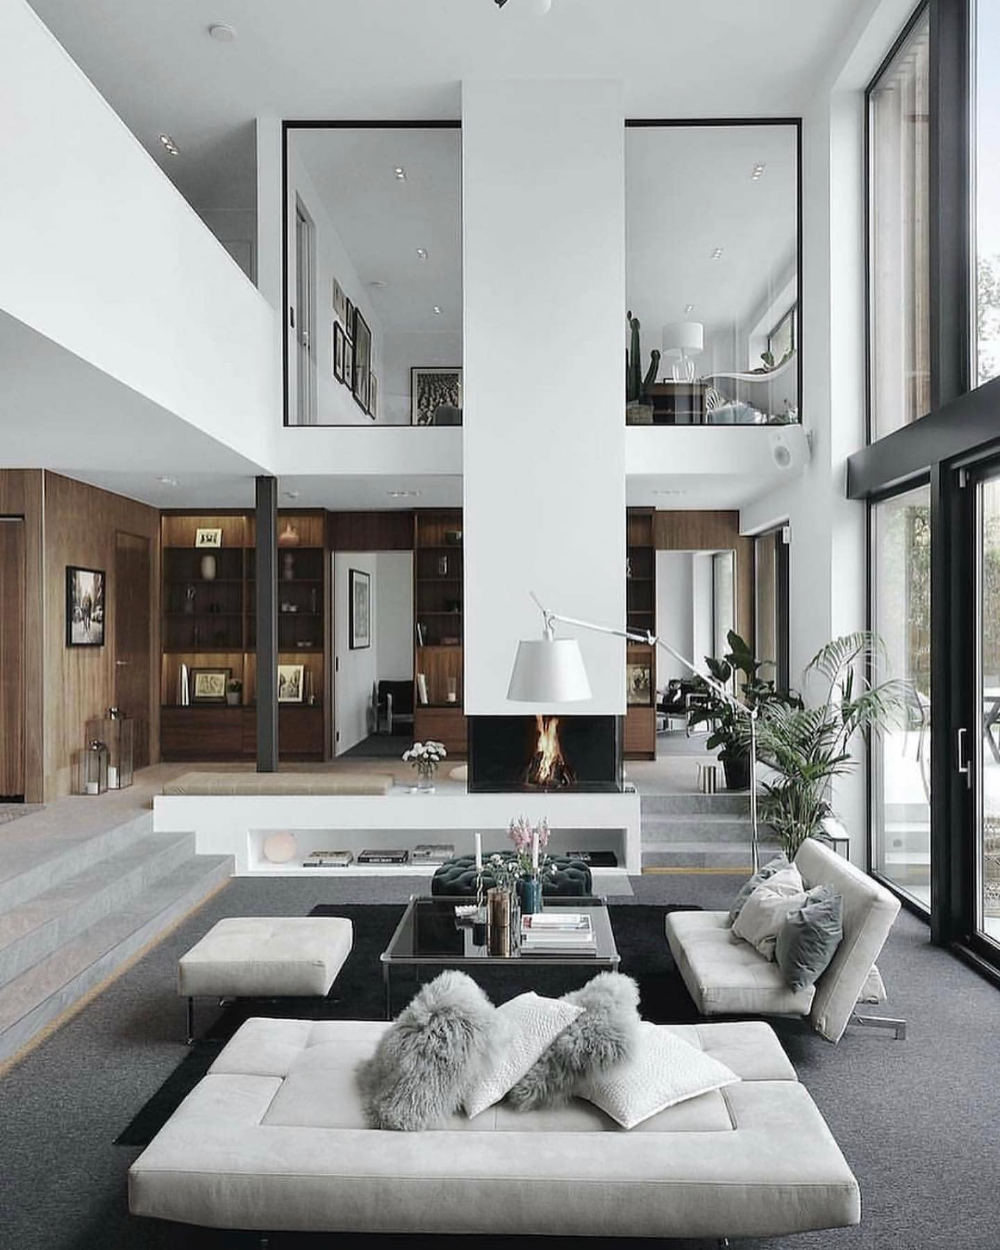 Double Height Space Design Google Search Modern Houses Interior Modern House Design Minimalism Interior